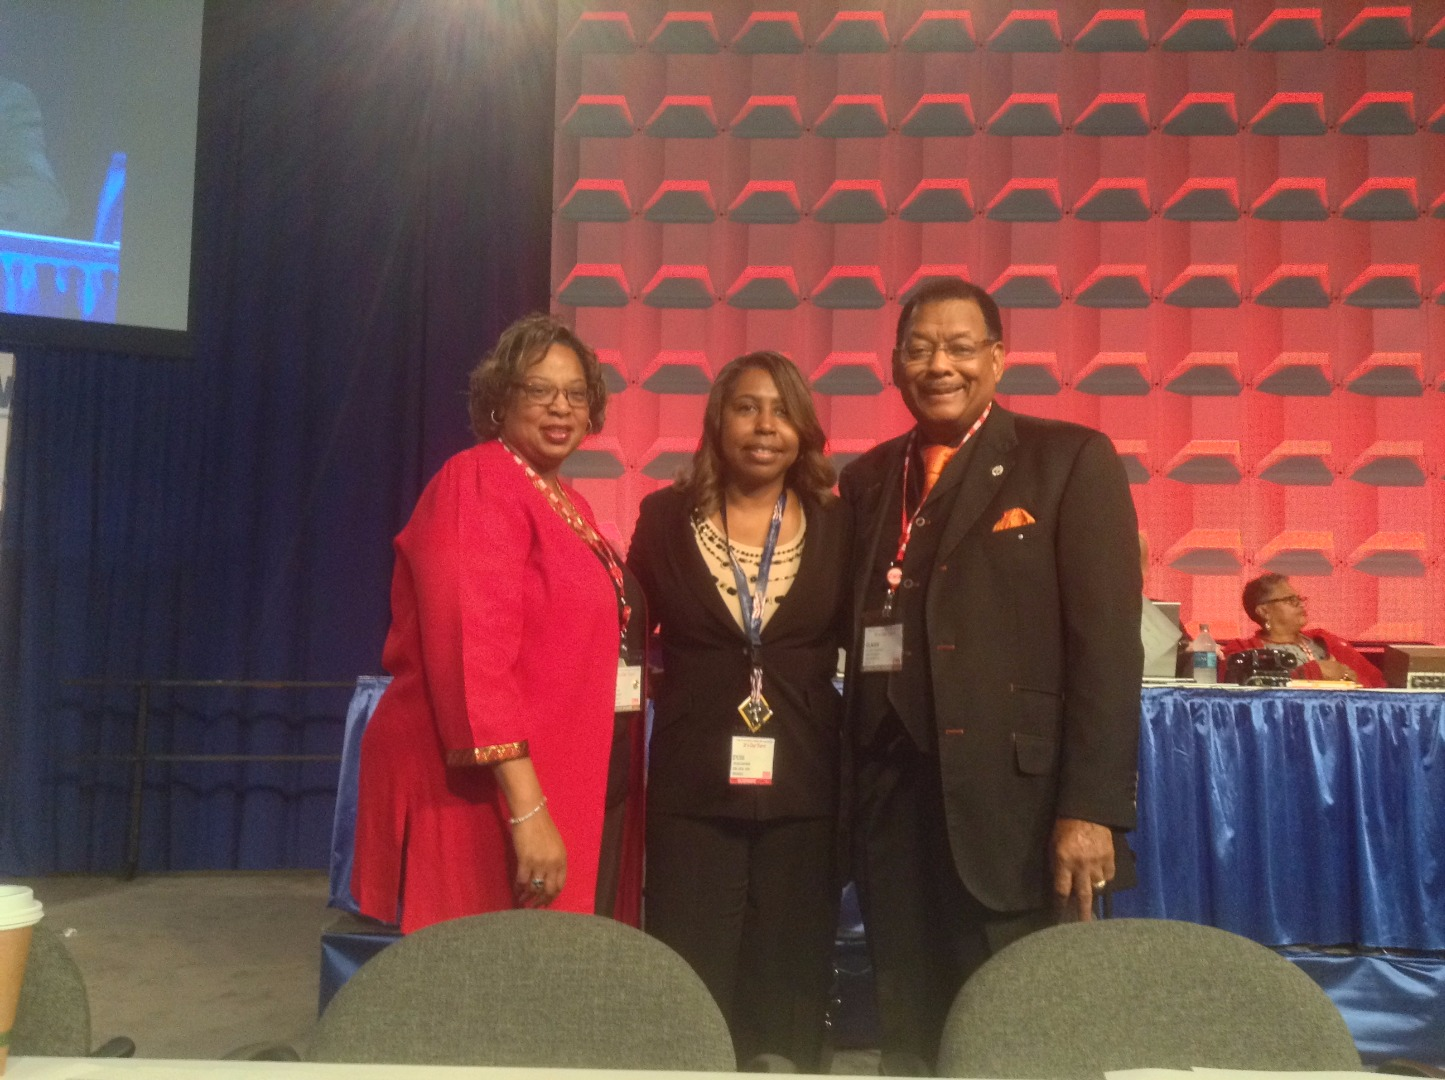 June 10, 2015 - CWA 75th Convention Cobo Hall Detroit, Michigan Final Day Invocation By Sylvia Chapman, CWA Local 4250/CTU #16 Vice President -   View Video